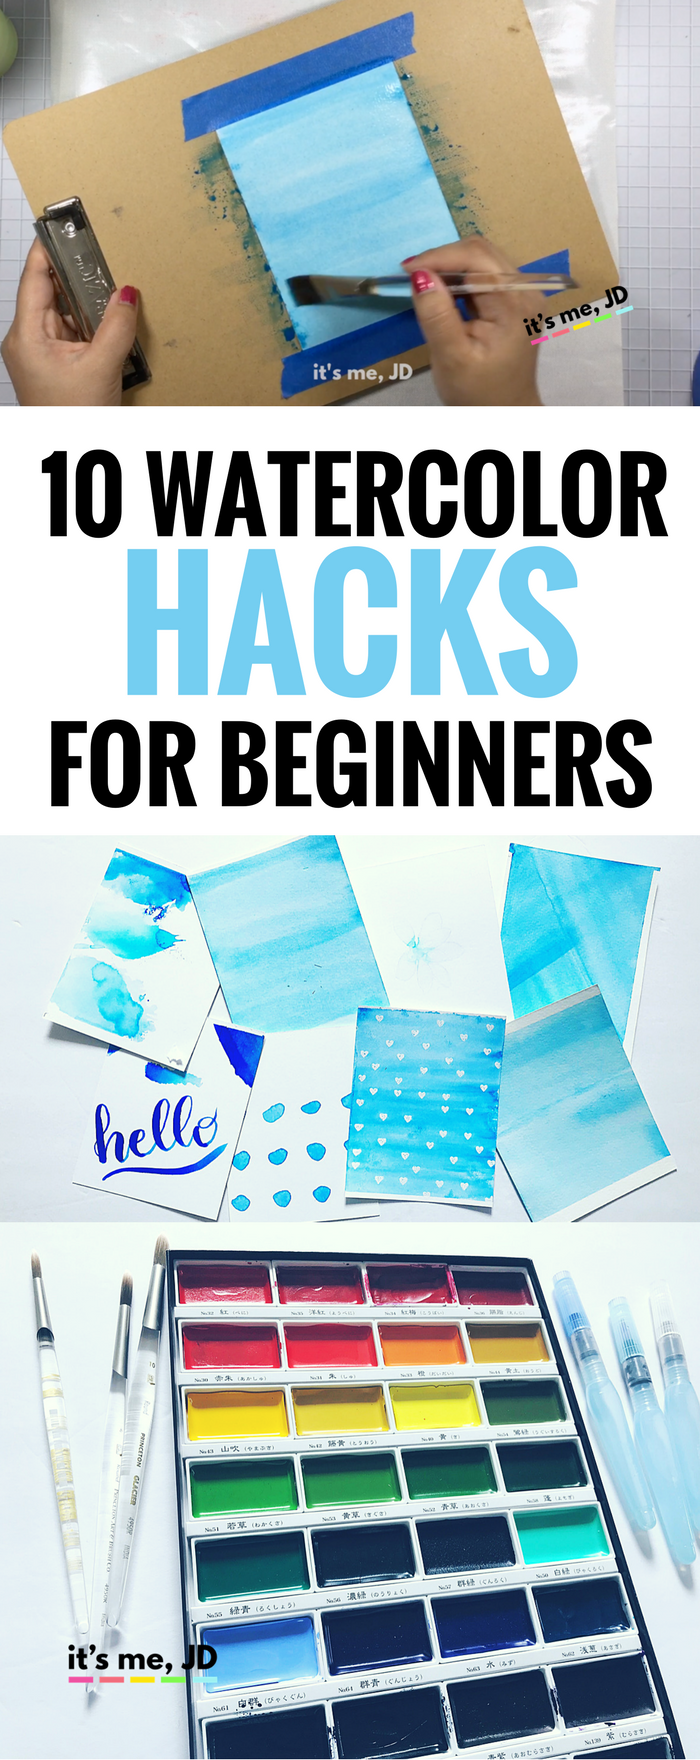 10 watercolor hacks for beginners tips and tricks to for Watercolor supplies for beginners